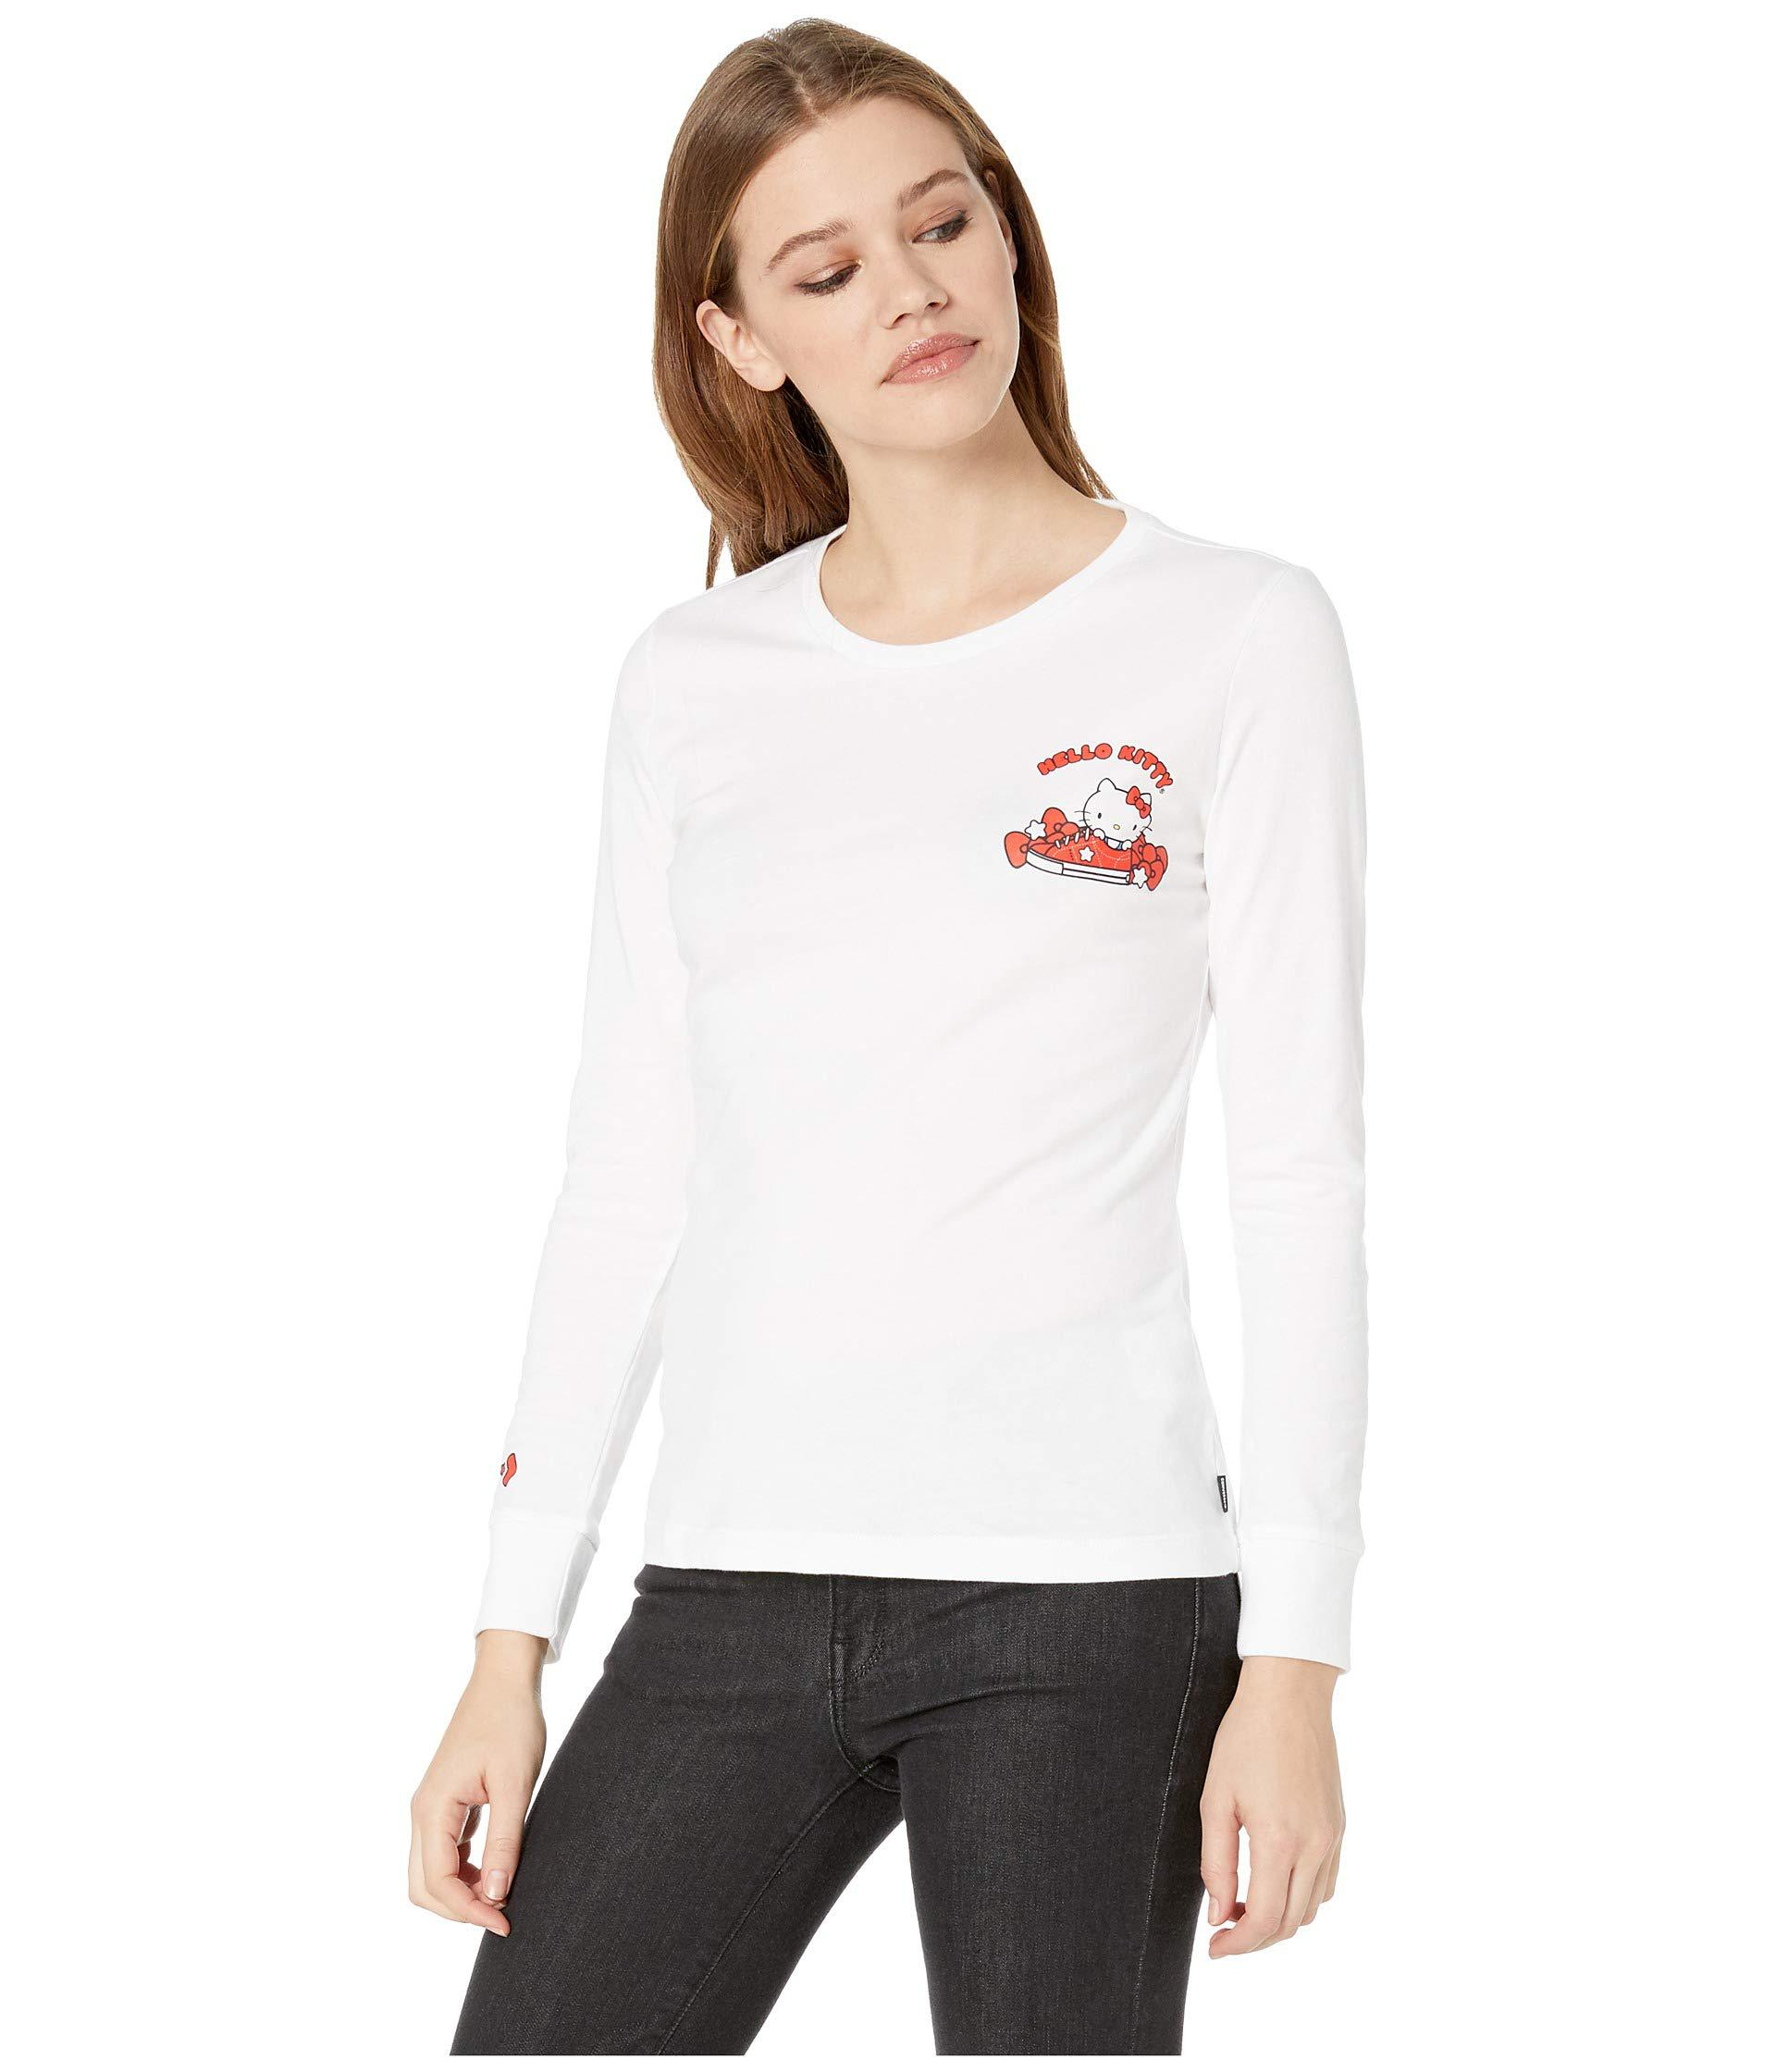 0d1eb3109d52f0 Lyst - Converse X Hello Kitty White Back Print Long Sleeve T-shirt in White  - Save 24%